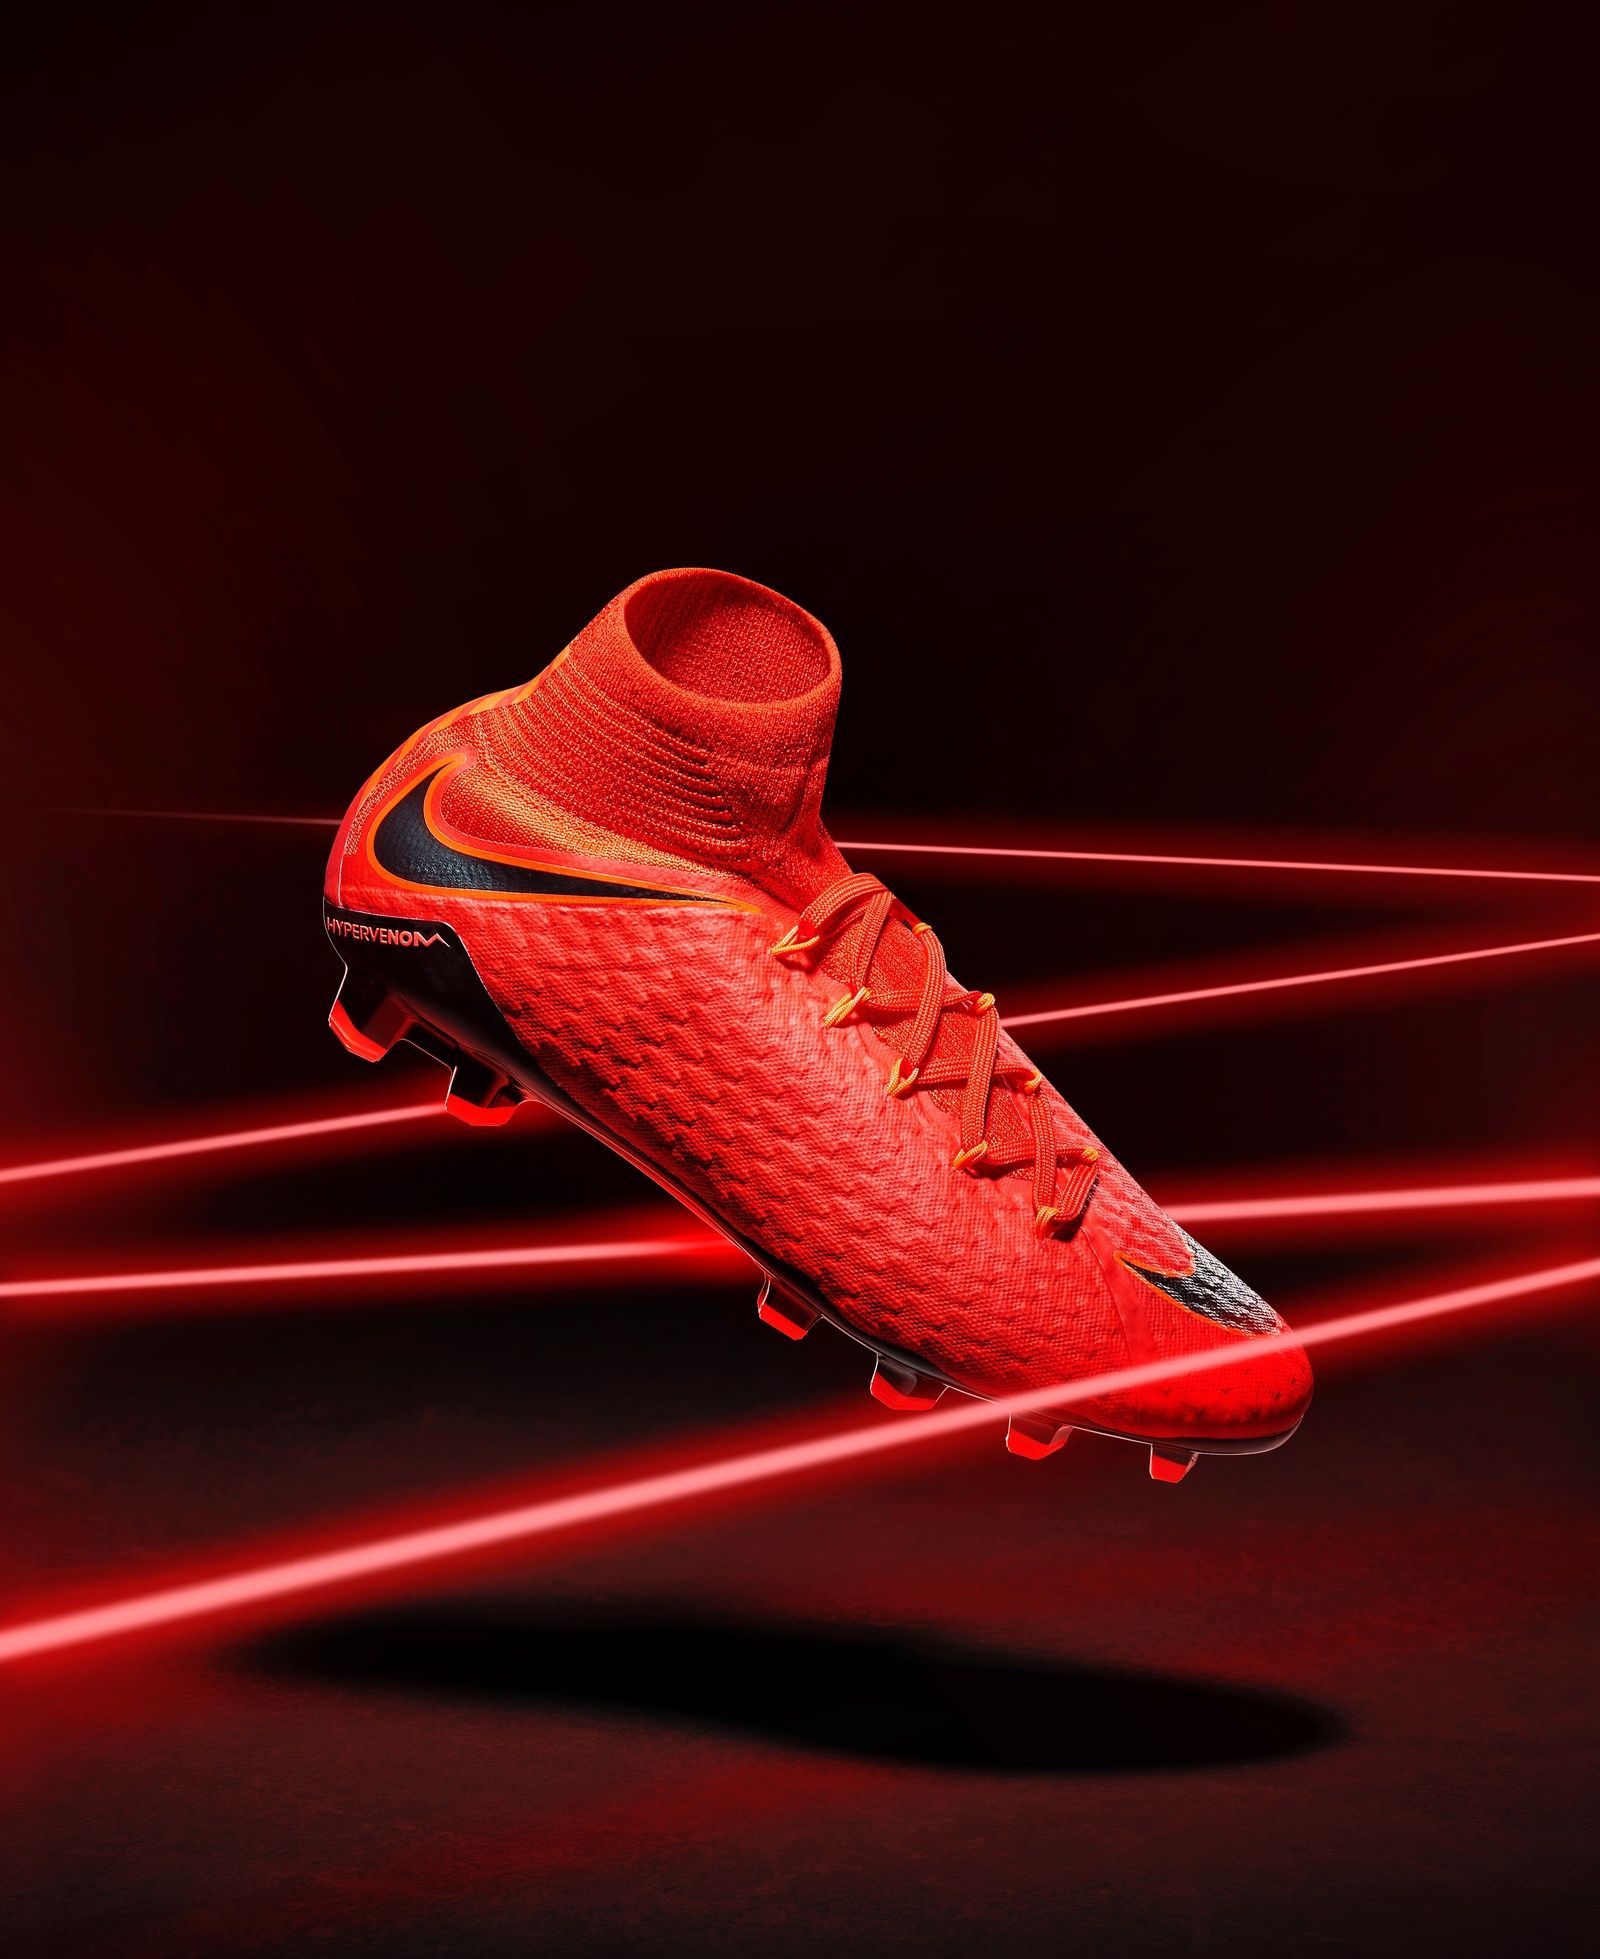 763041ce3fb4 Nike HyperVenom Football Boots. Still life advertising photography by Pete  Oakley